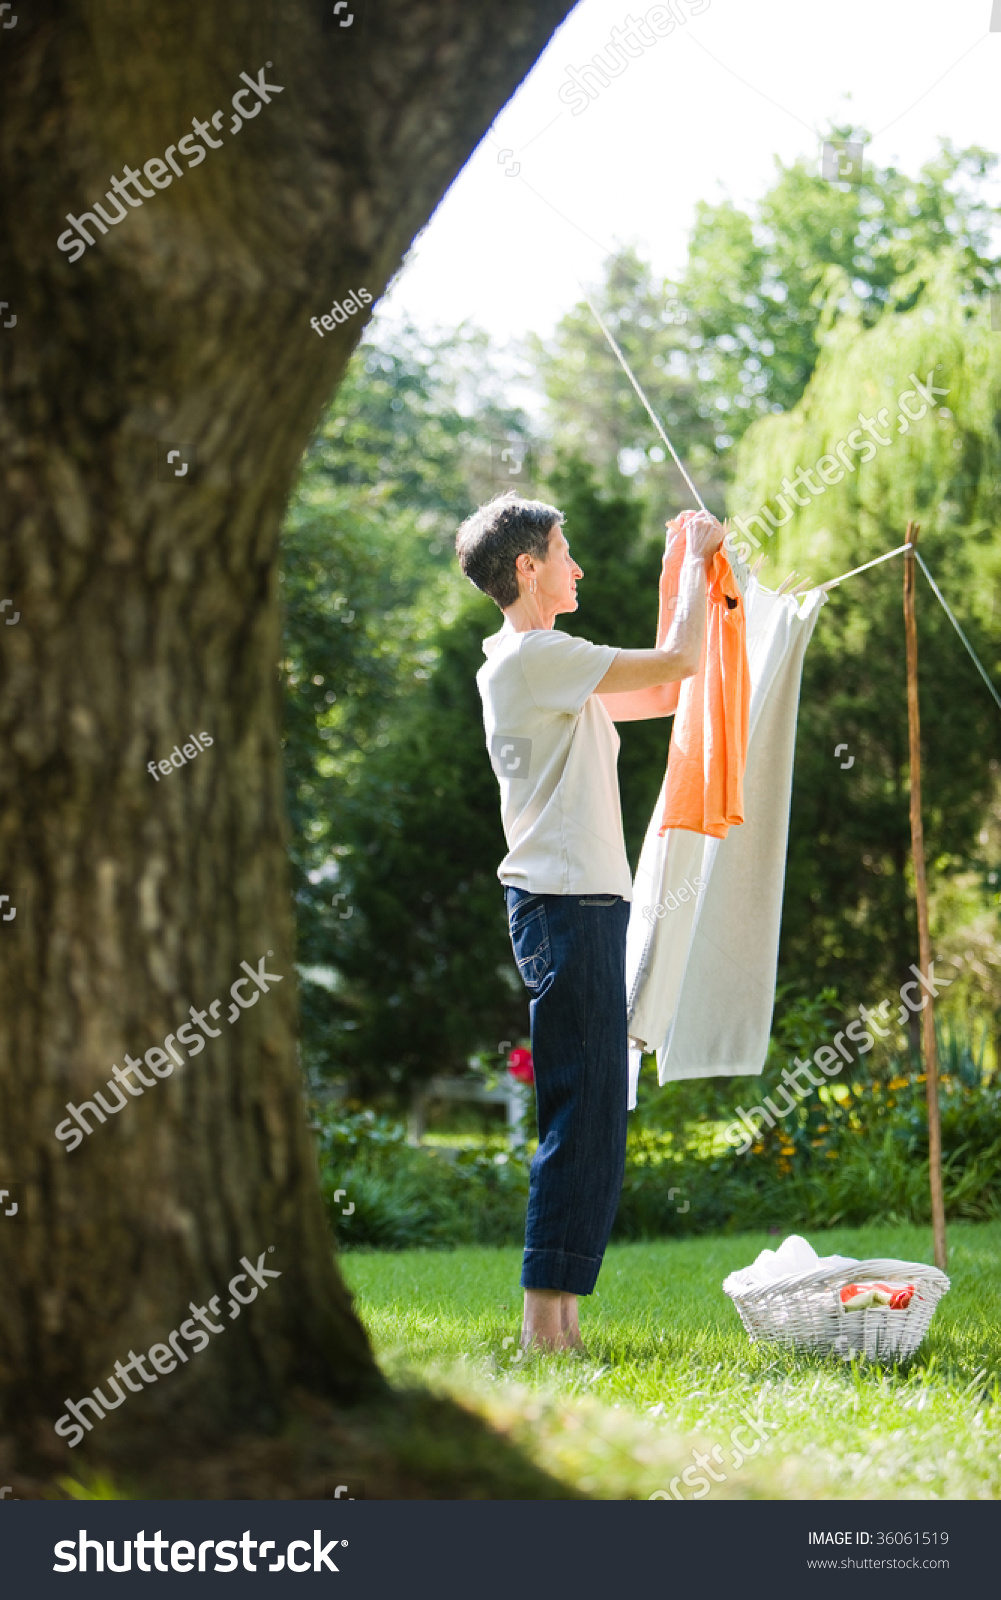 Woman Hanging Clothes Her Yard Stock Photo 36061519